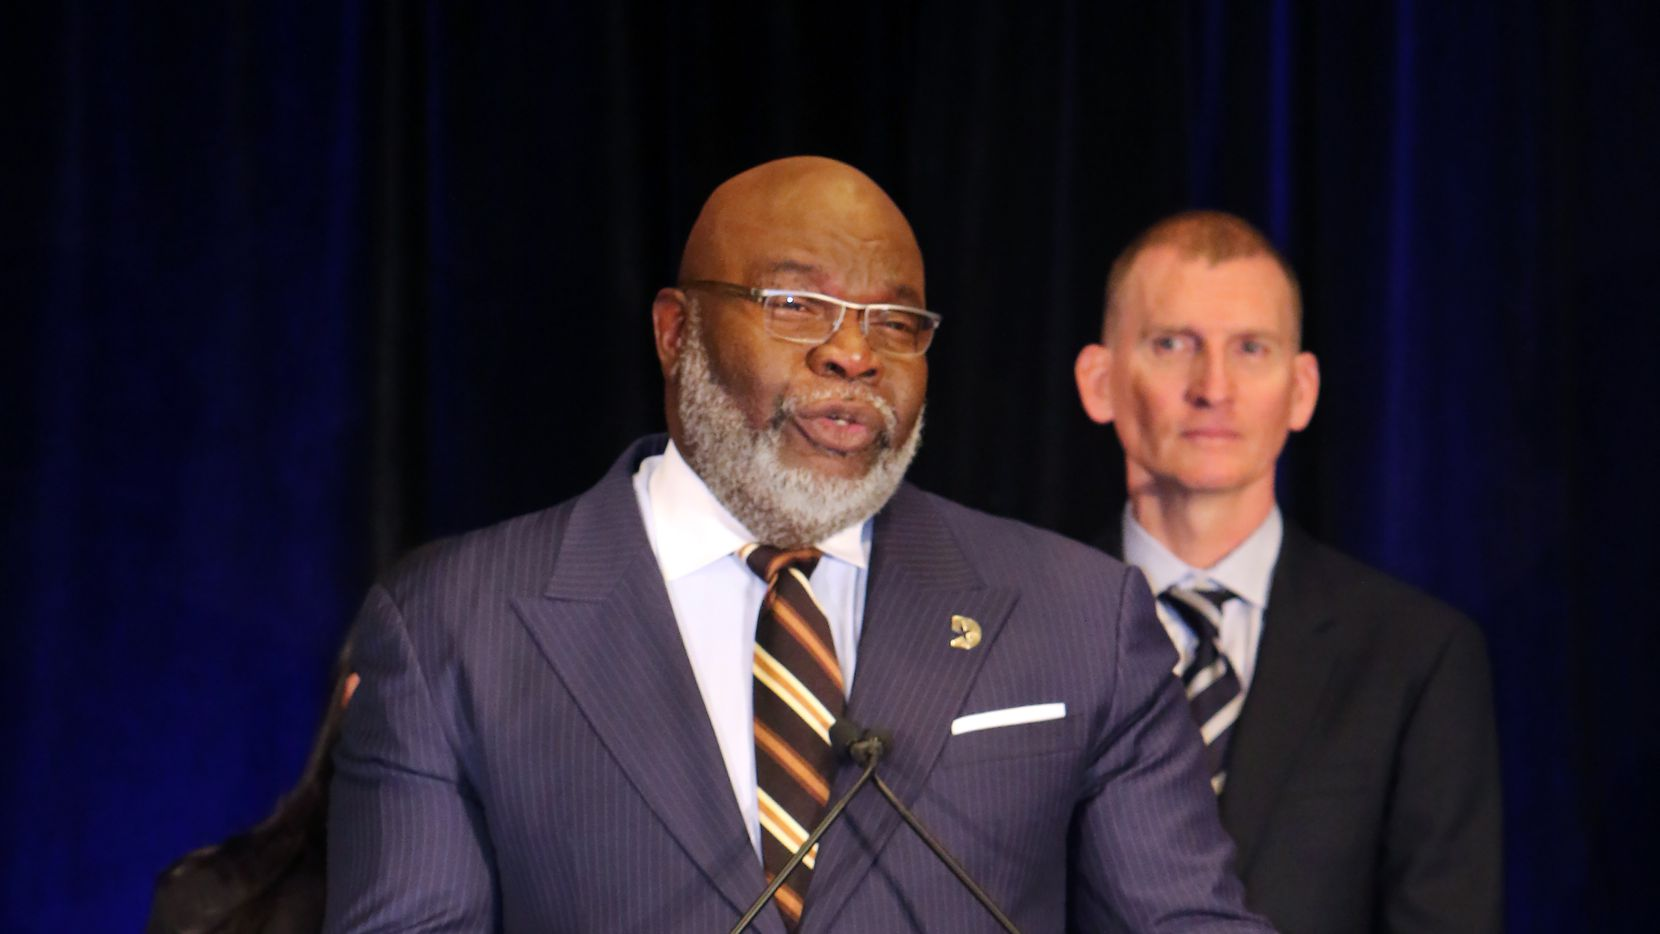 Bishop T.D. Jakes and city officials kick off the countdown to megafest, the four-day festival of family, faith and film.